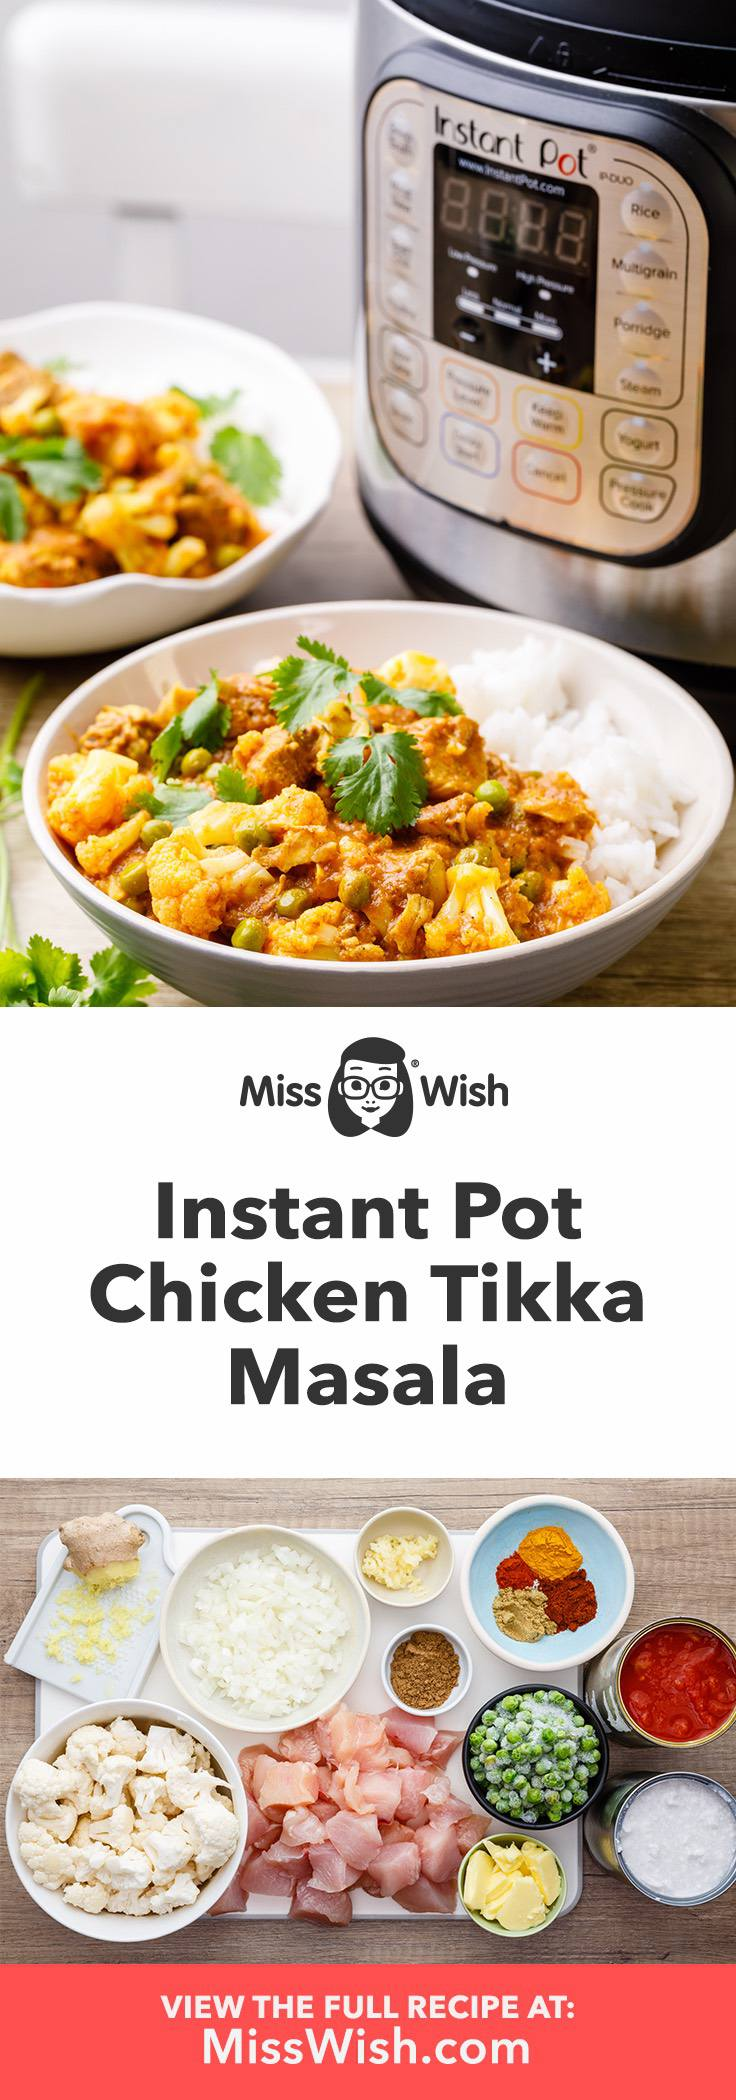 Yummy Instant Pot Chicken Tikka Masala with Cauliflower and Peas